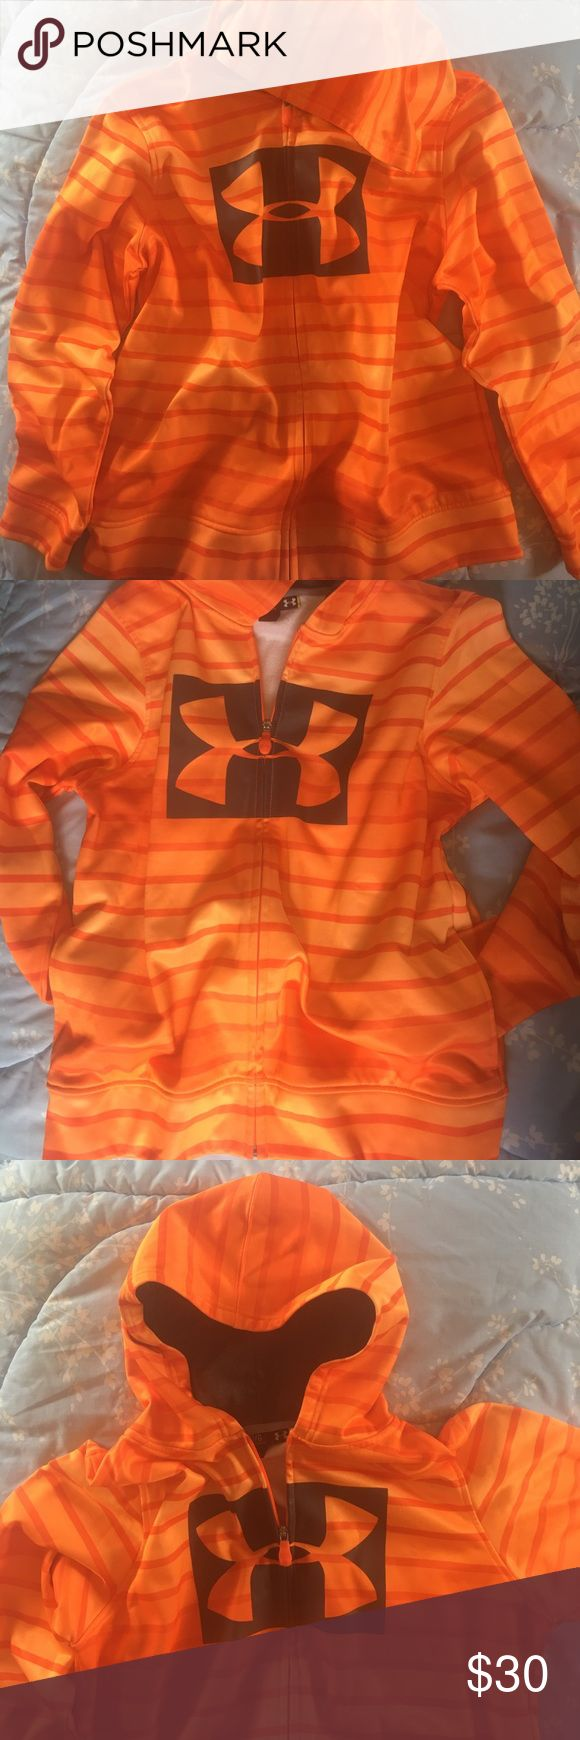 Under Armour zip-up jacket Youth Large Excellent condition Neon orange Under Armour zip-up jacket, size youth large. Has two almost non existent tiny dots (pictured above) on the back at the very bottom, otherwise like new condition. Can also fit a small adult or a small/medium adult woman.                                                                           🚭 and 🐶🐱 free home Under Armour Jackets & Coats